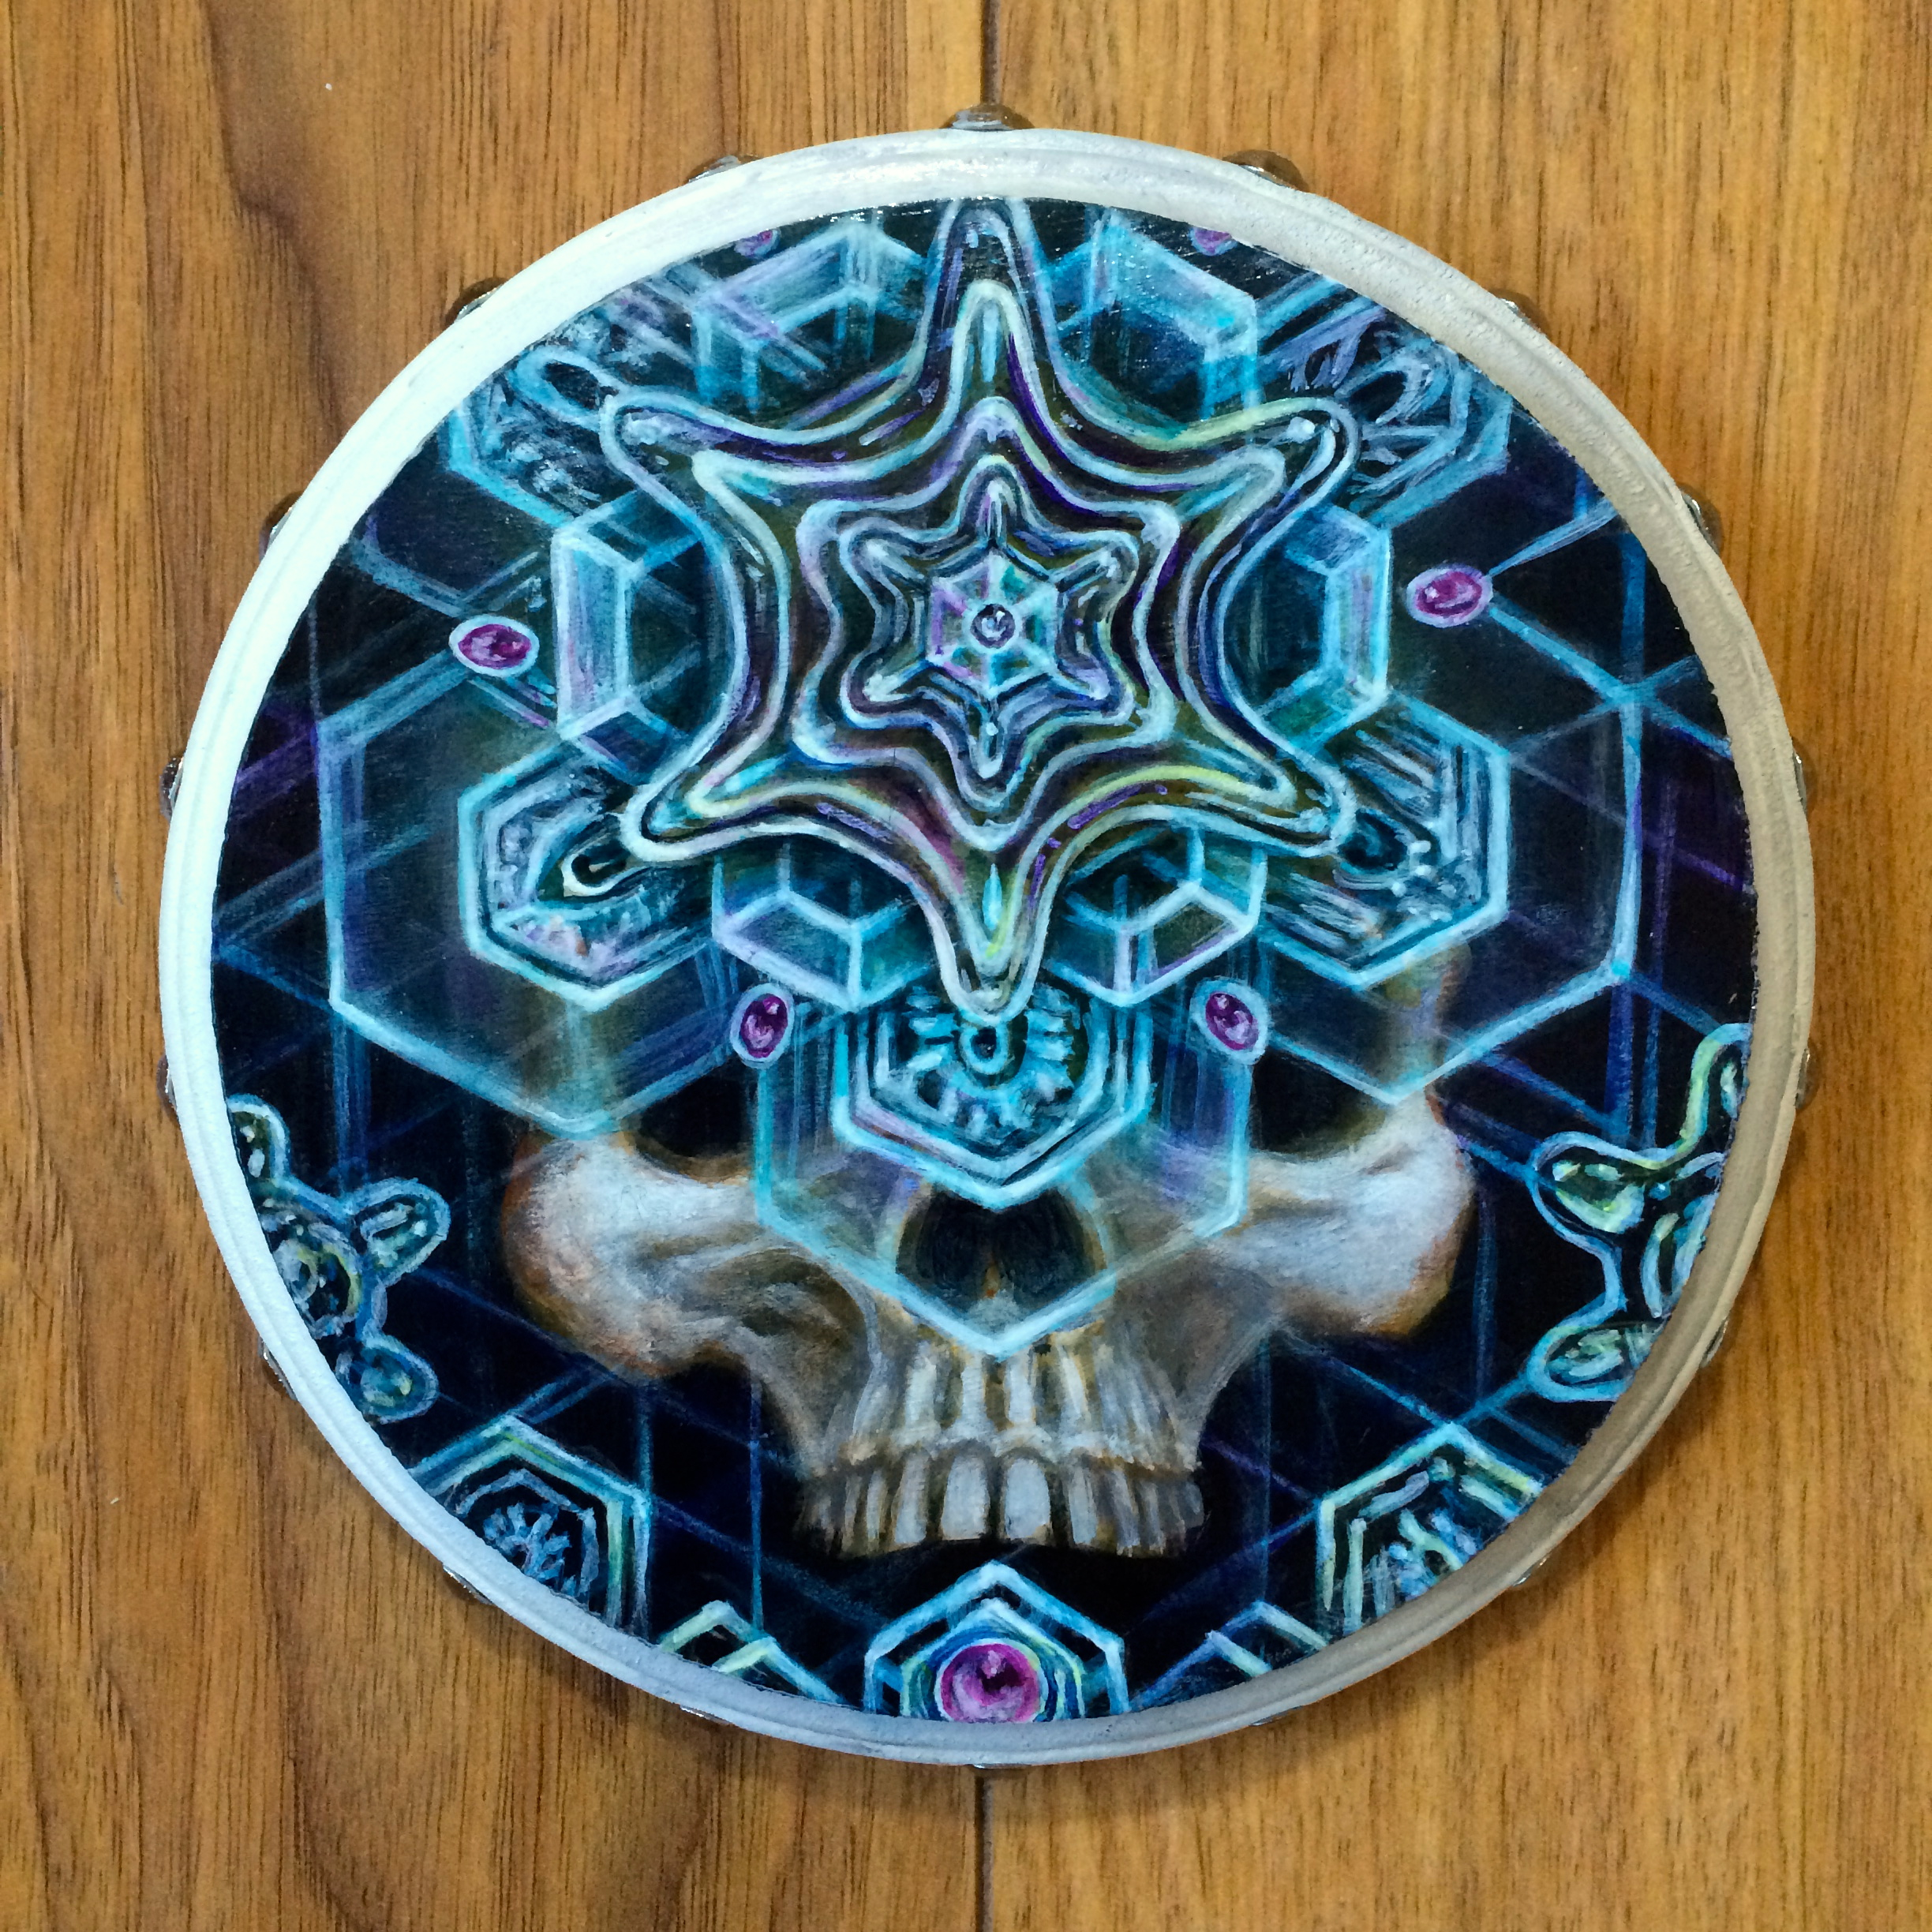 Crystalline Water Skull